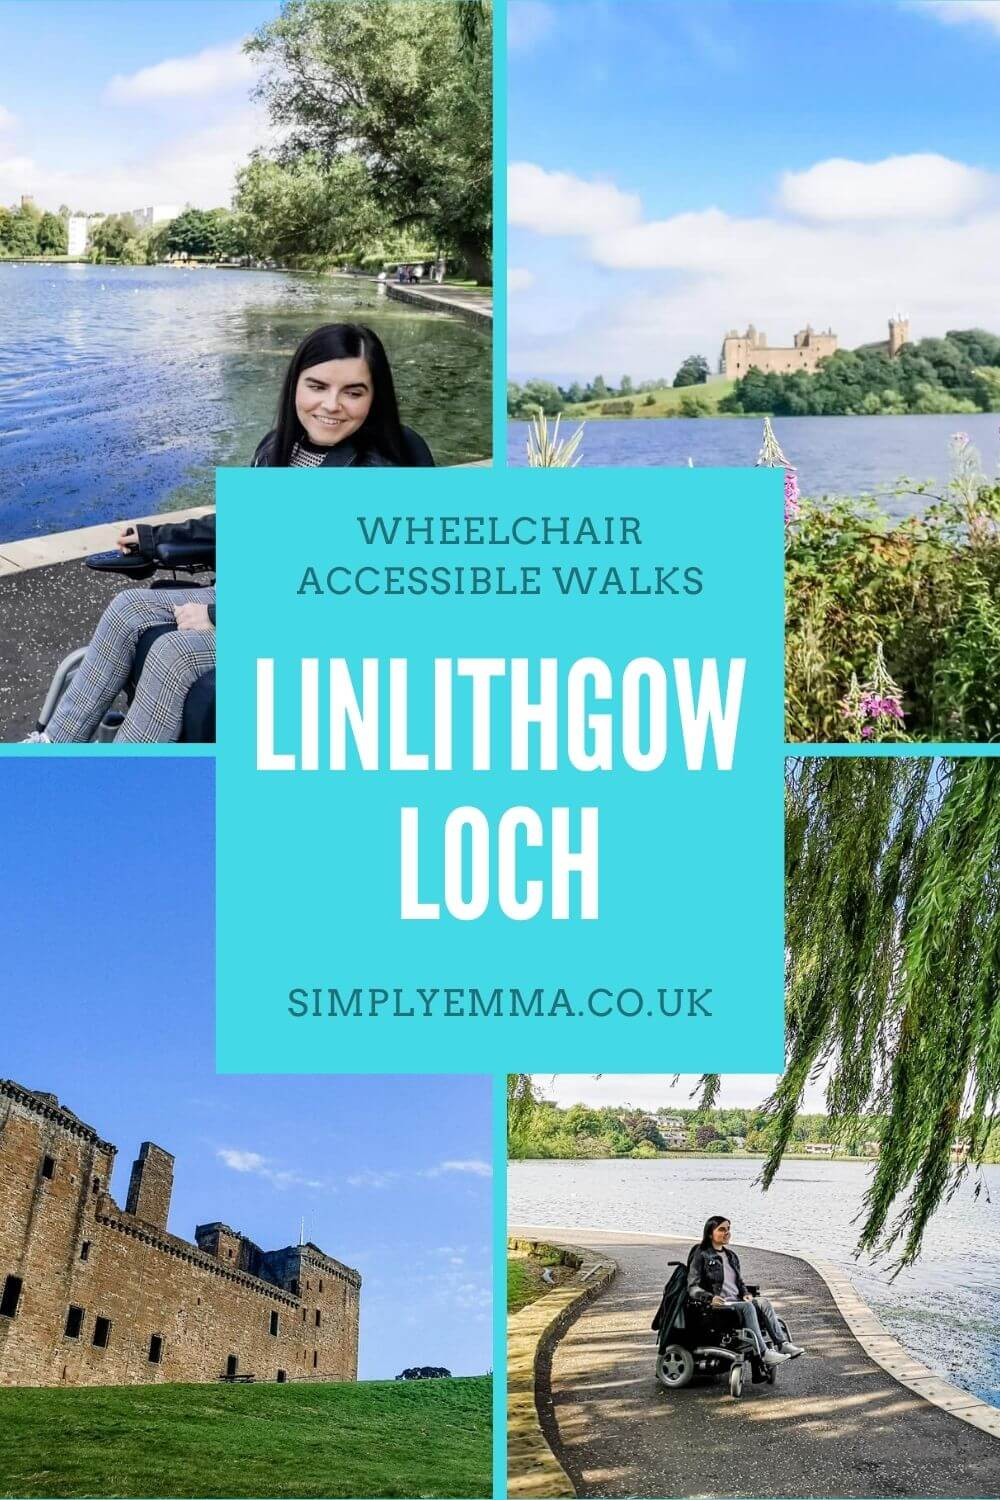 Linlithgow Loch, A Wheelchair Accessible Walk in West Lothian, Scotland